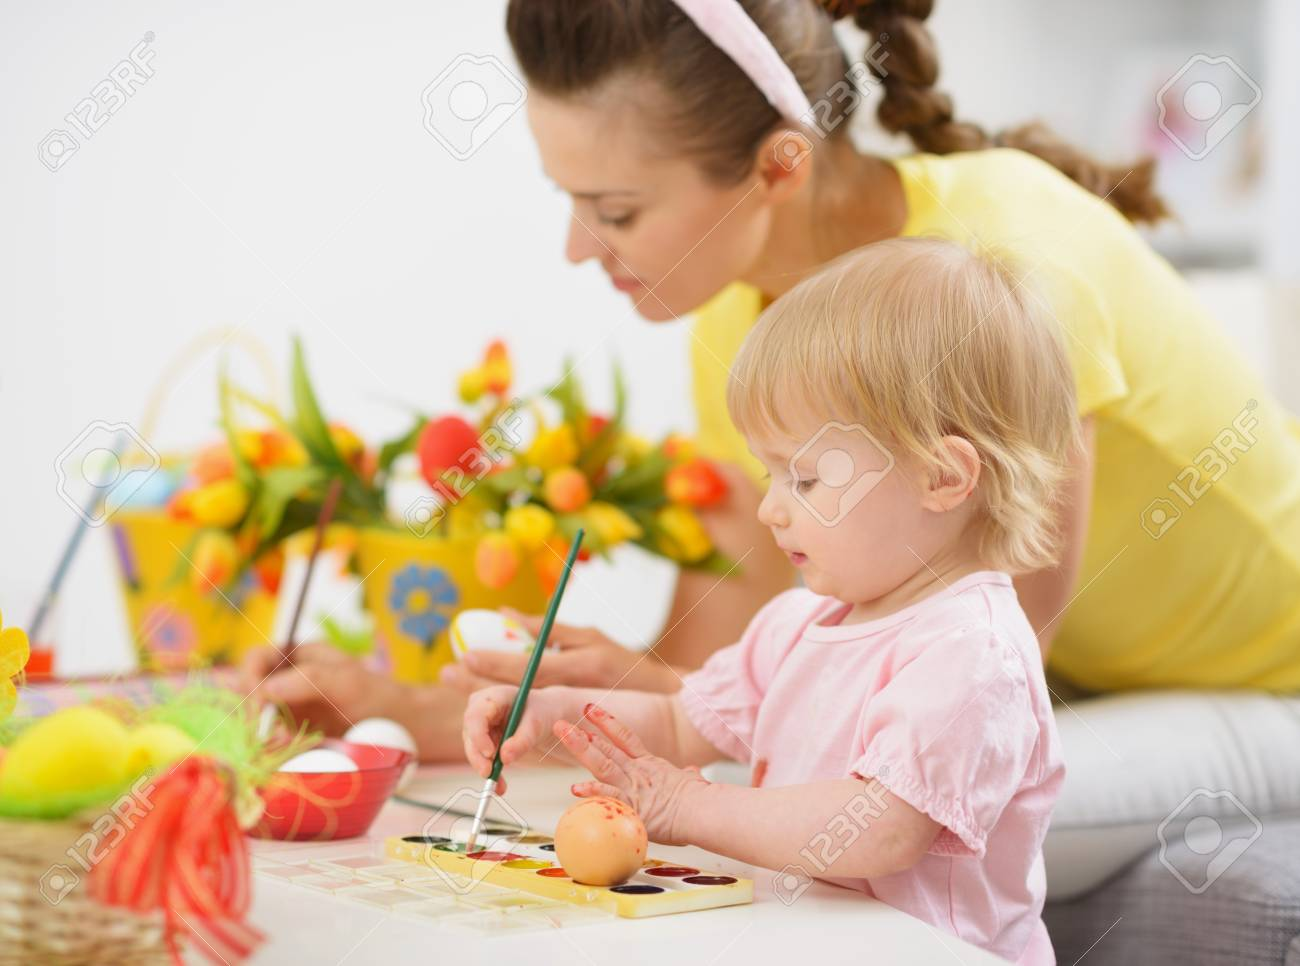 Mother and baby making Easter decorations Stock Photo - 17304861